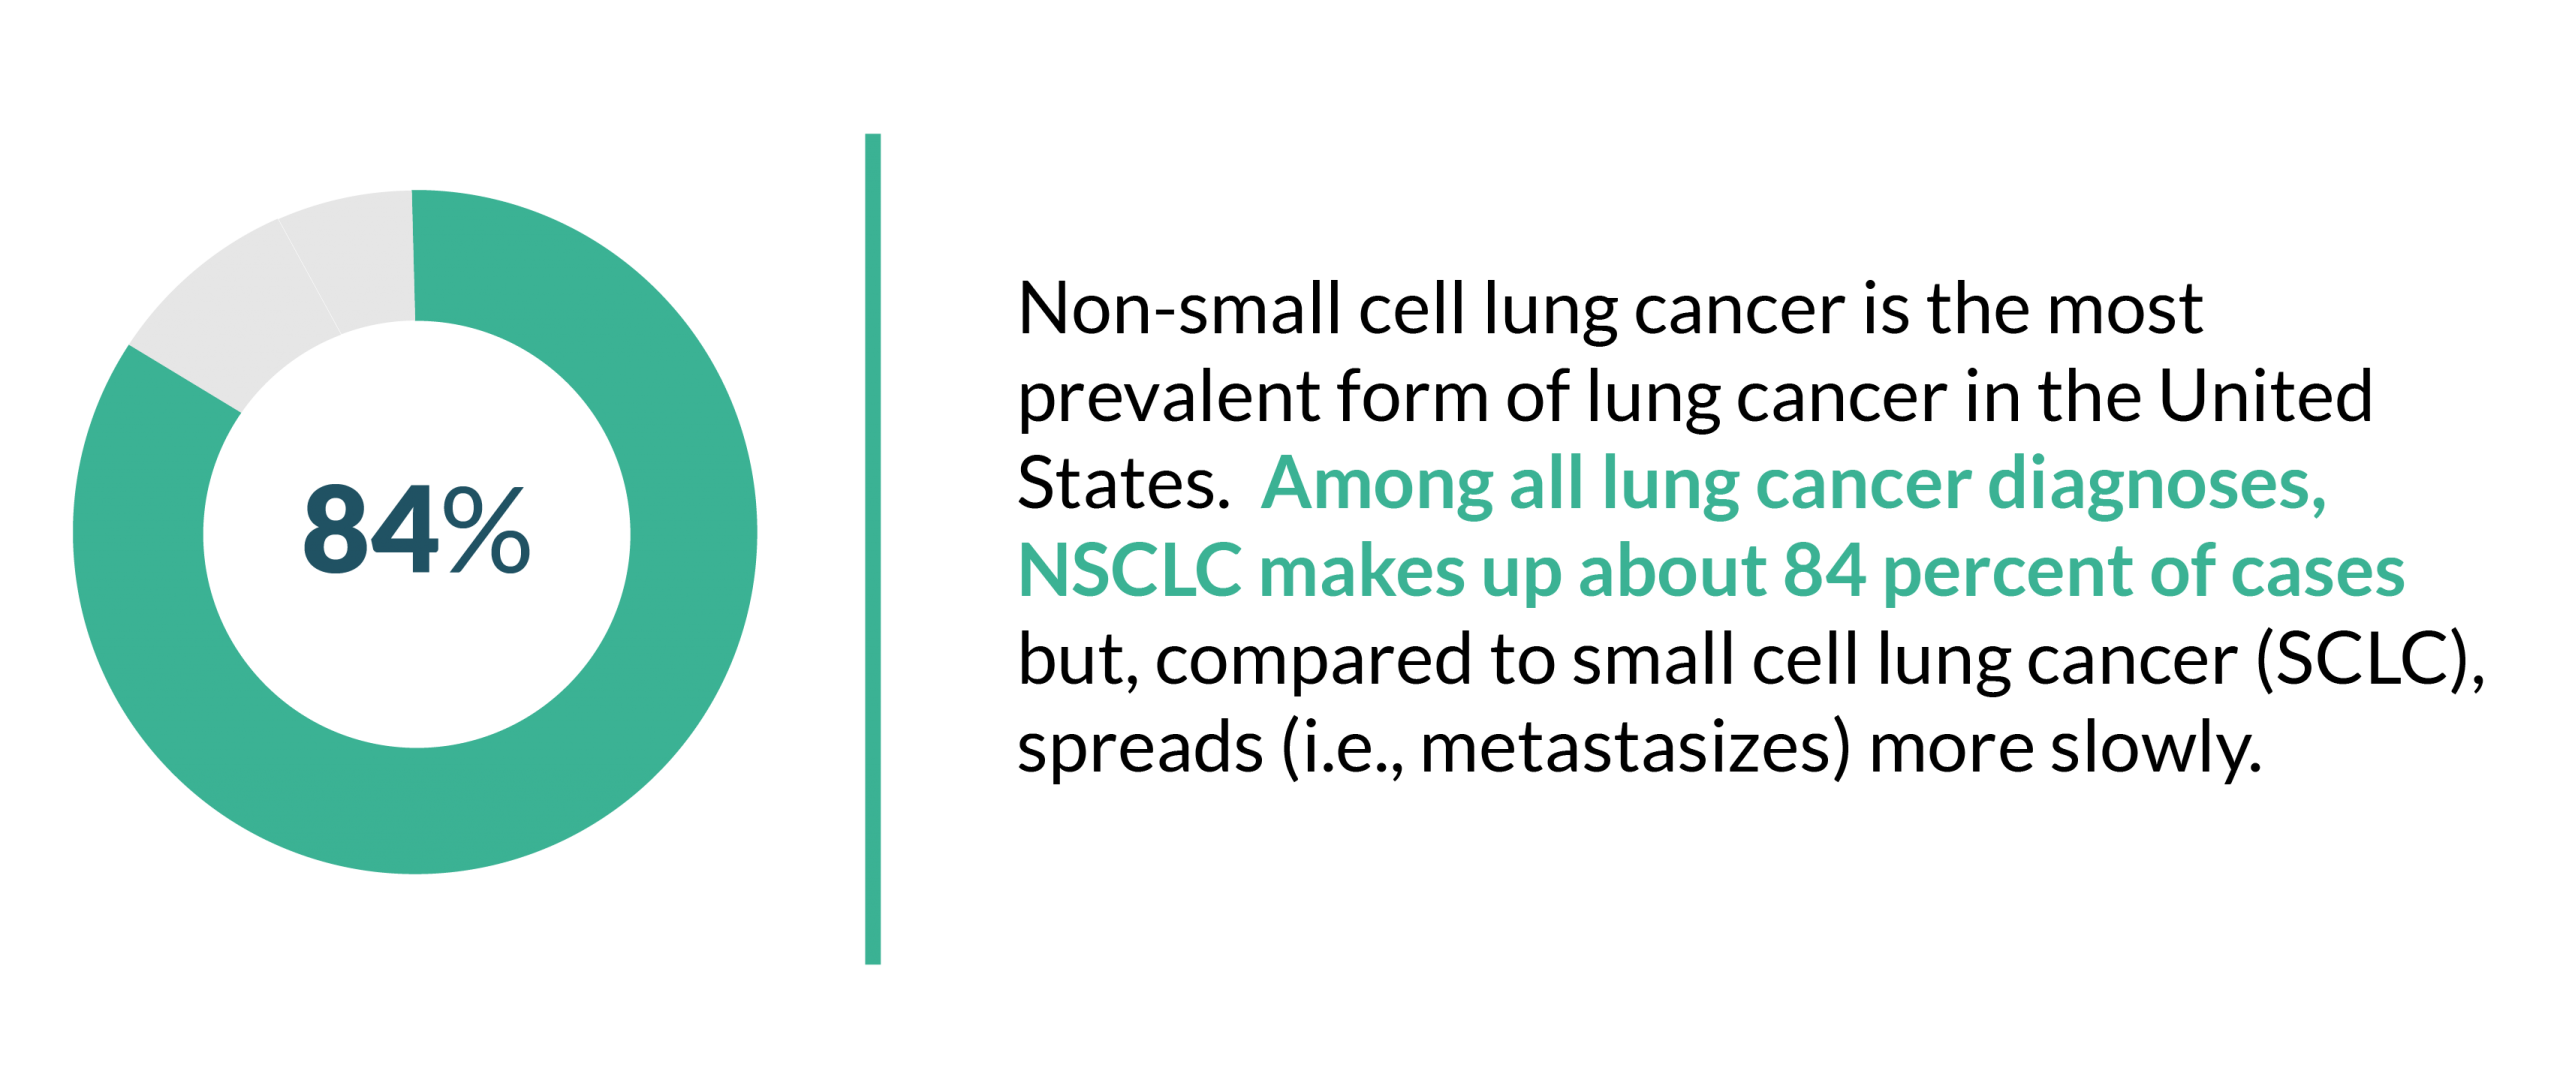 This is a graphic displaying that Non-Small Cell Lung Cancer takes up 84% of lung cancer cases.